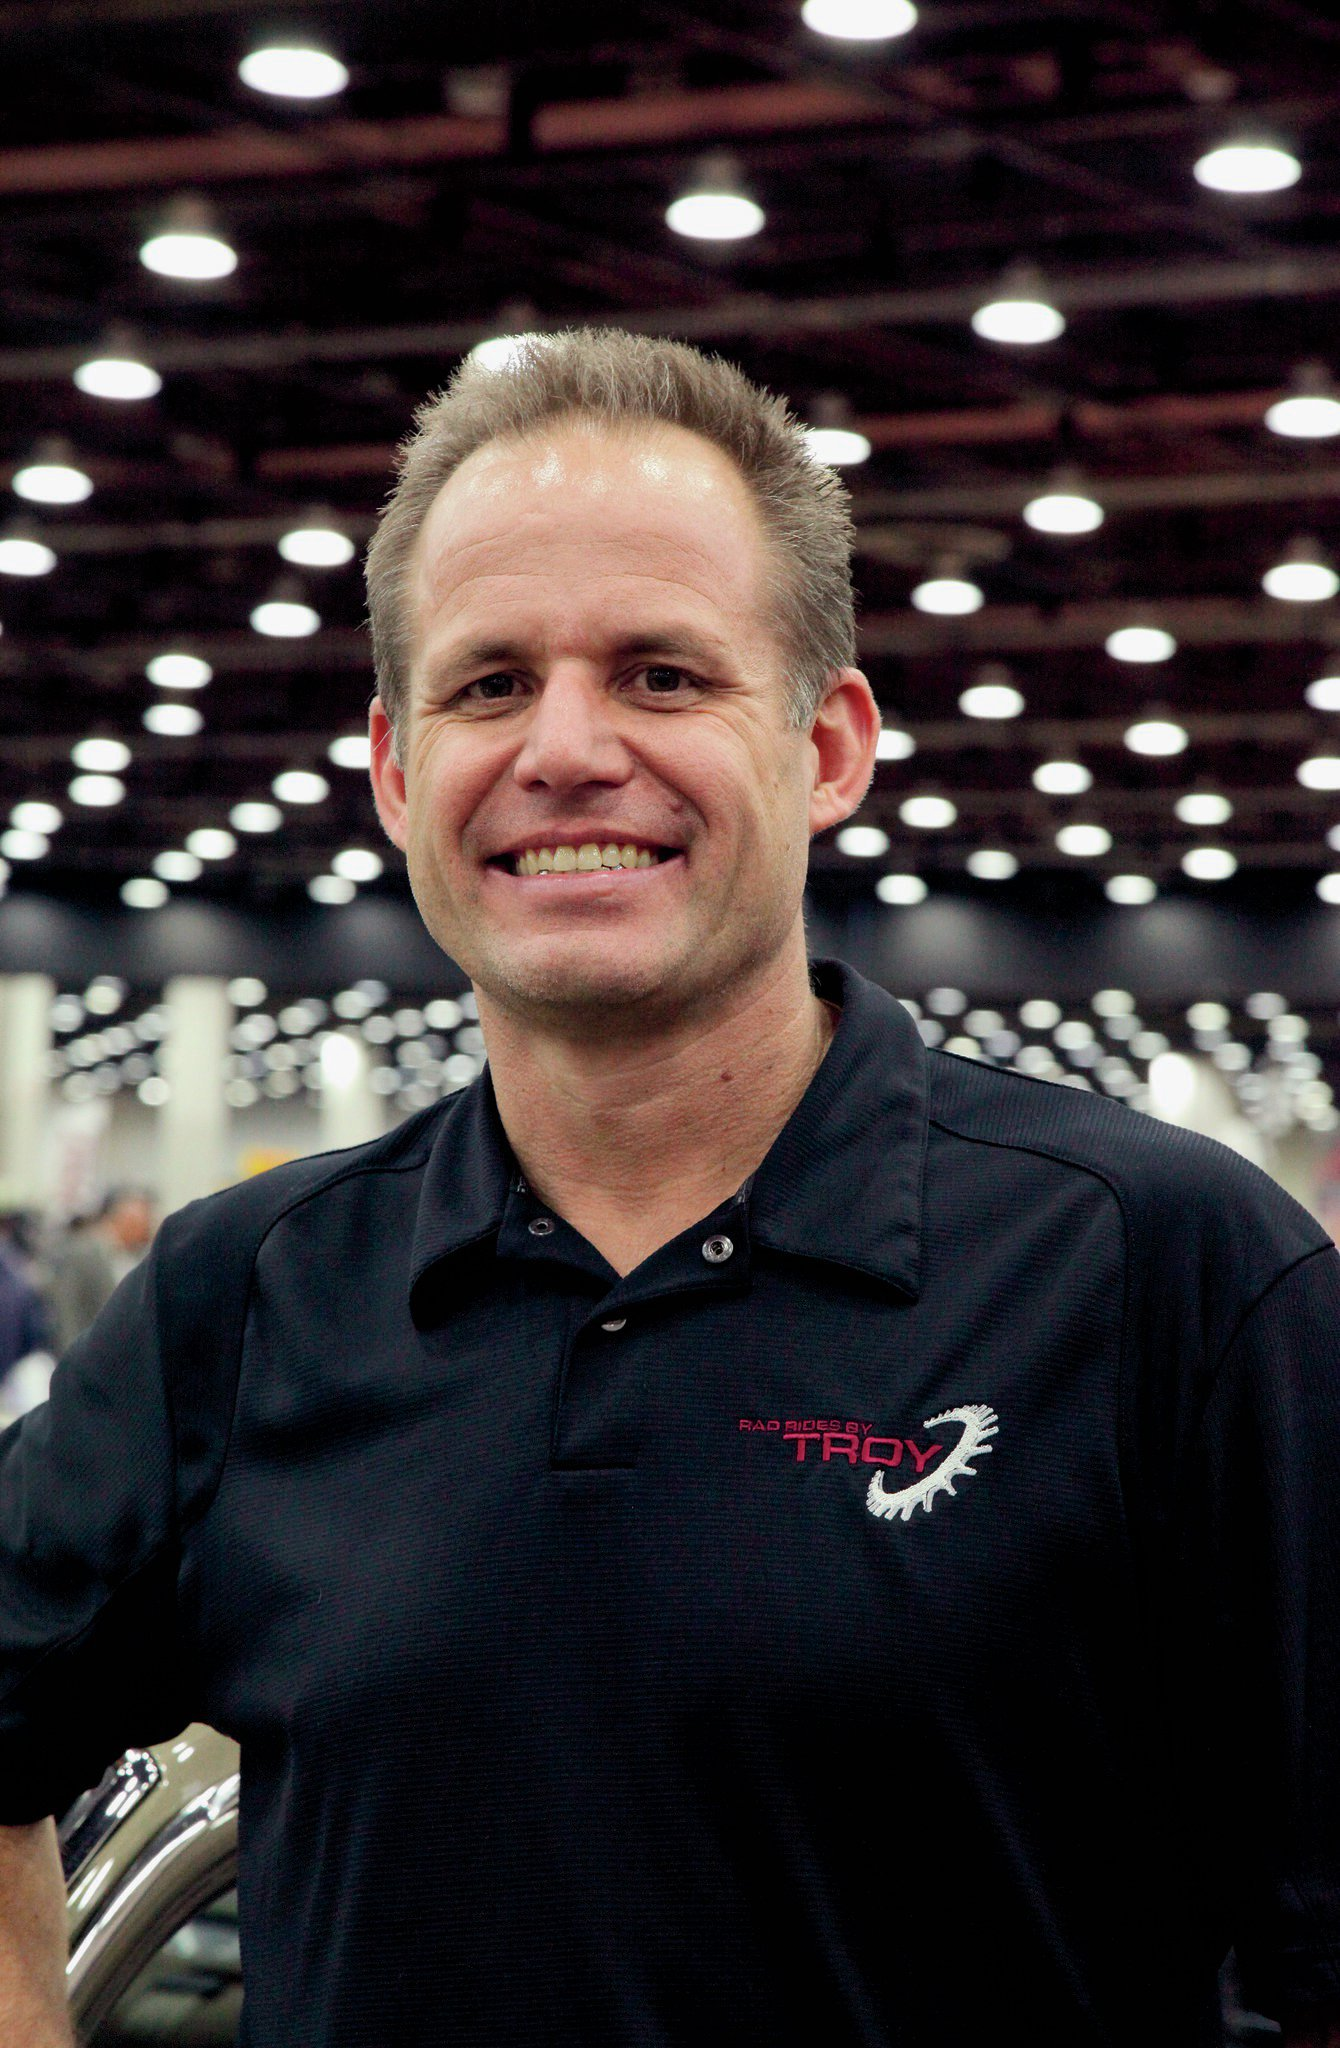 Troy Trepanier, the 2014 Detroit Autorama's Builder of the Year. In a relatively short 16 years, Trepanier, through his Rad Rides by Troy shop in Manteno, IL, has built some memorable vehicles for a host of clients, including AMBR and Ridler award winners, as well as record-setting Bonneville race cars.